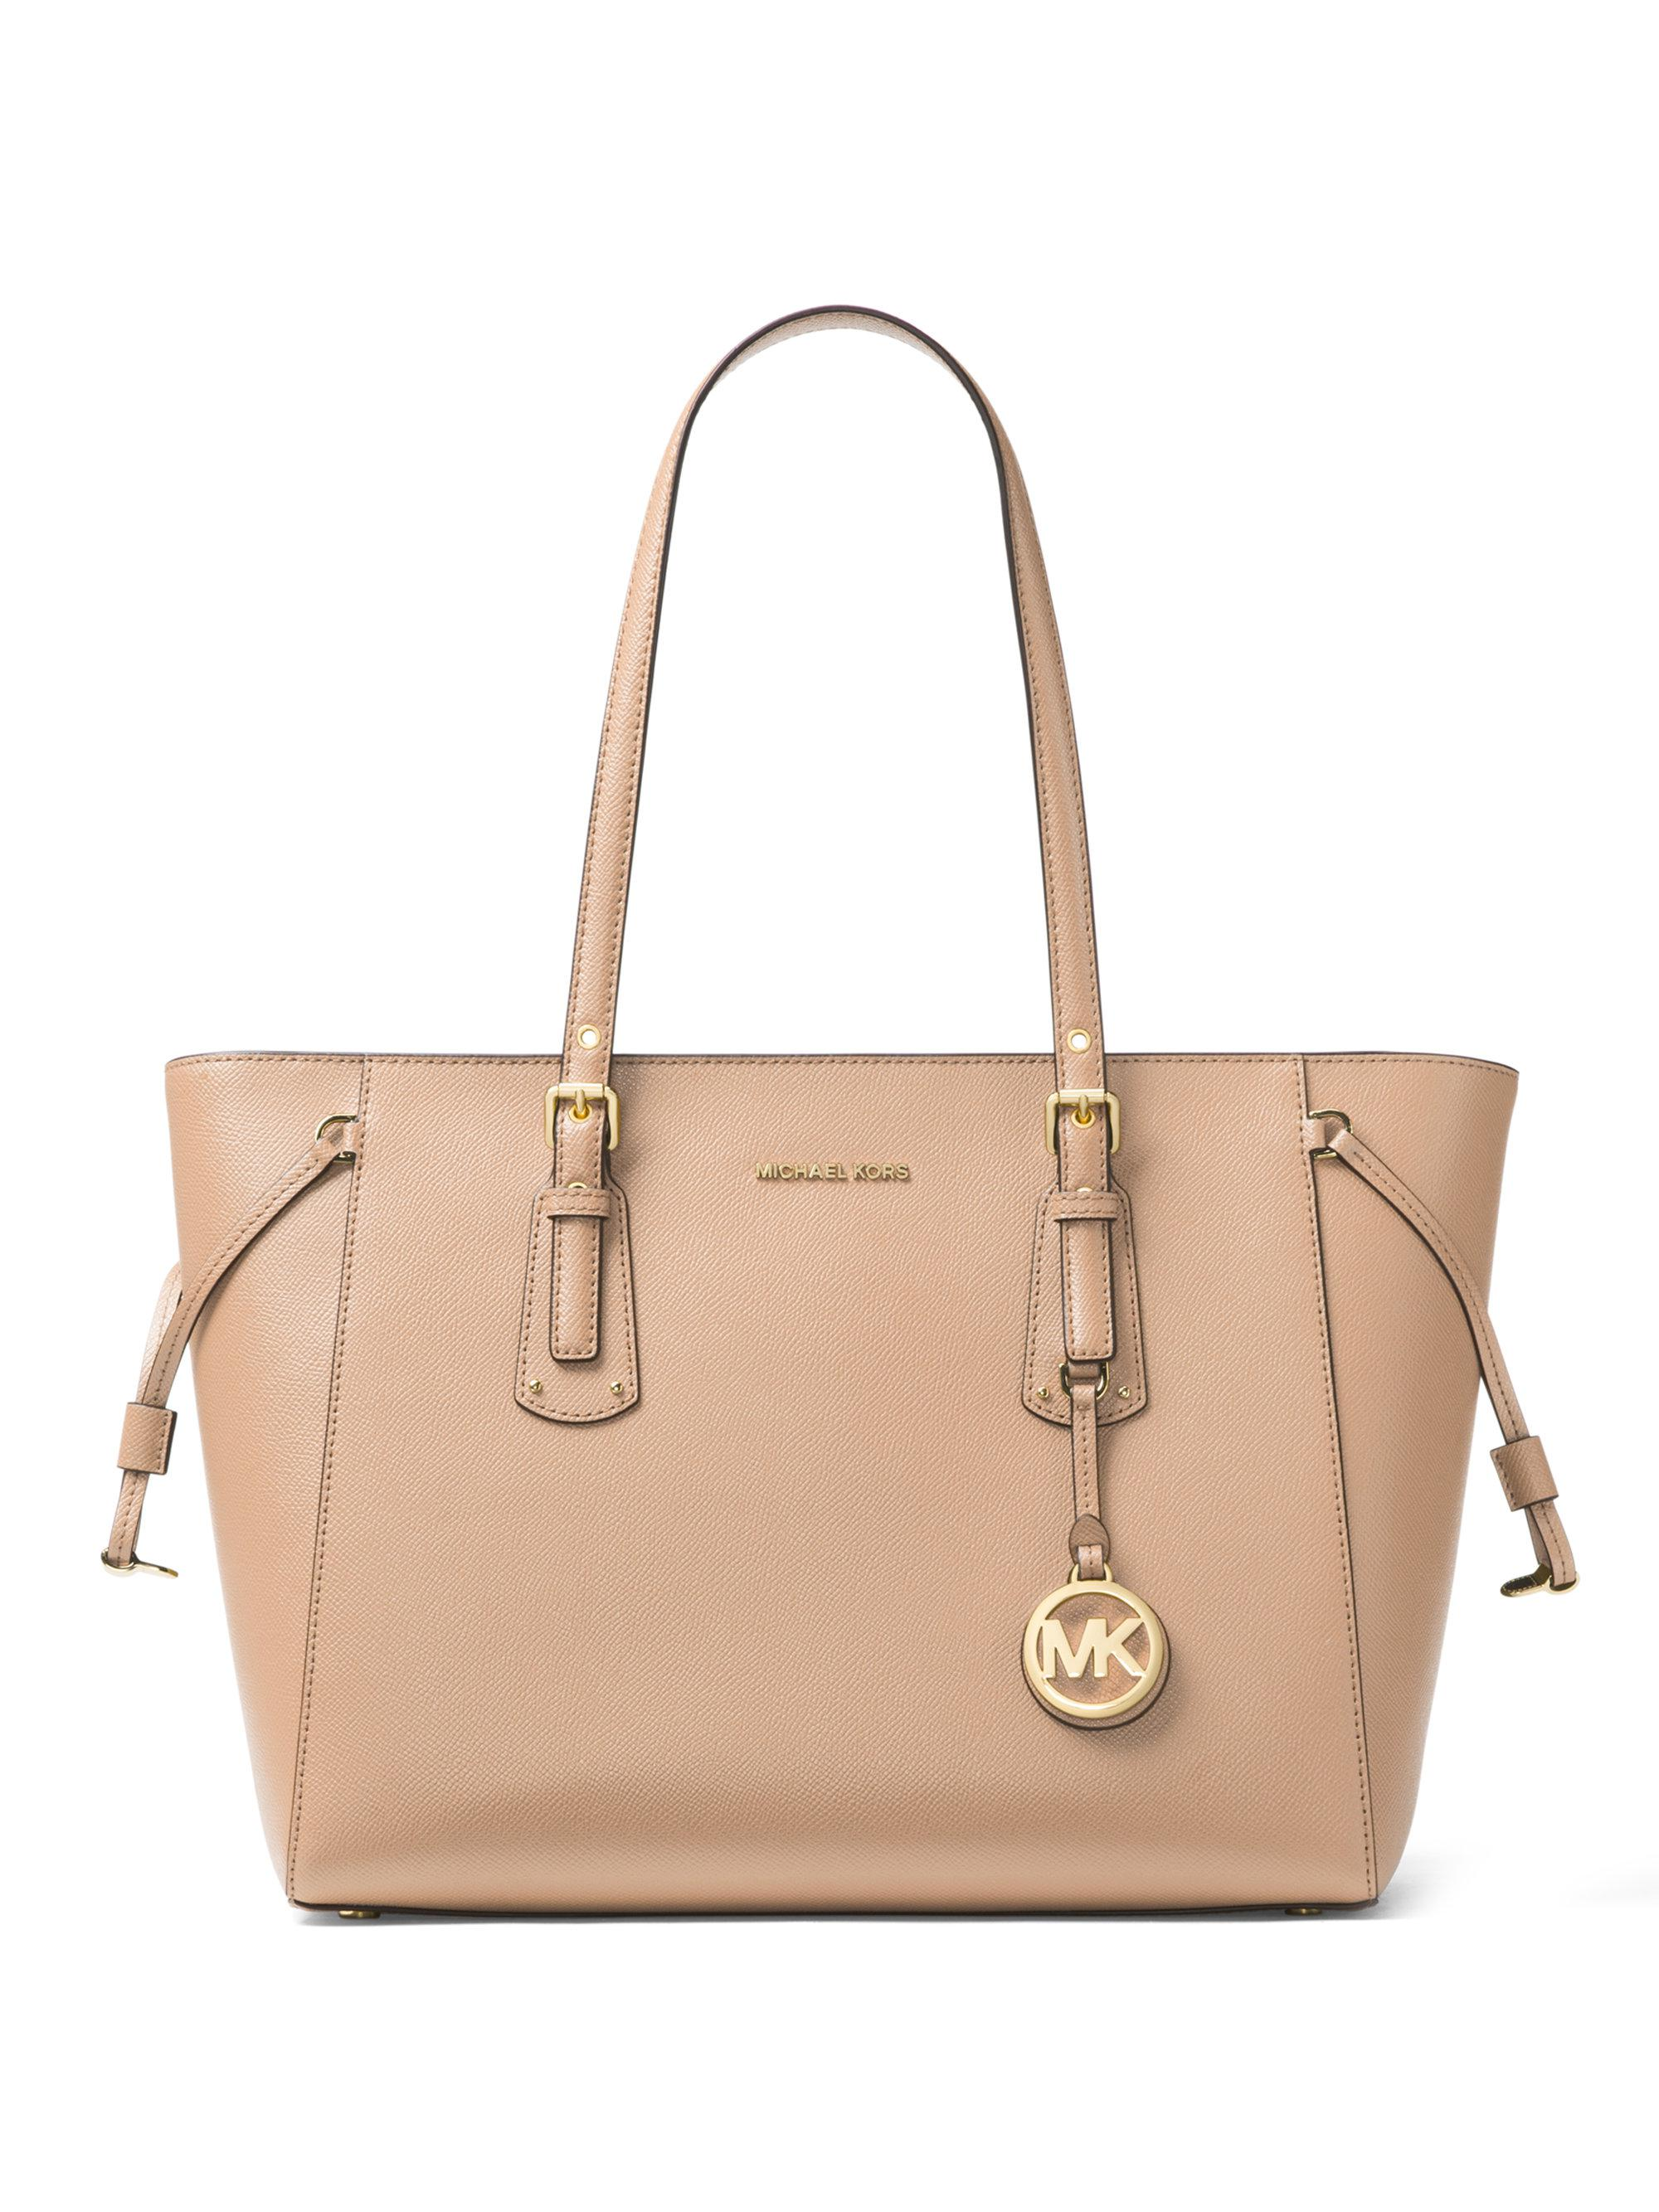 Voyager Medium Top Zip Tote Bag in Brown Monogrammed Canvas with Pink Flowers Michael Michael Kors